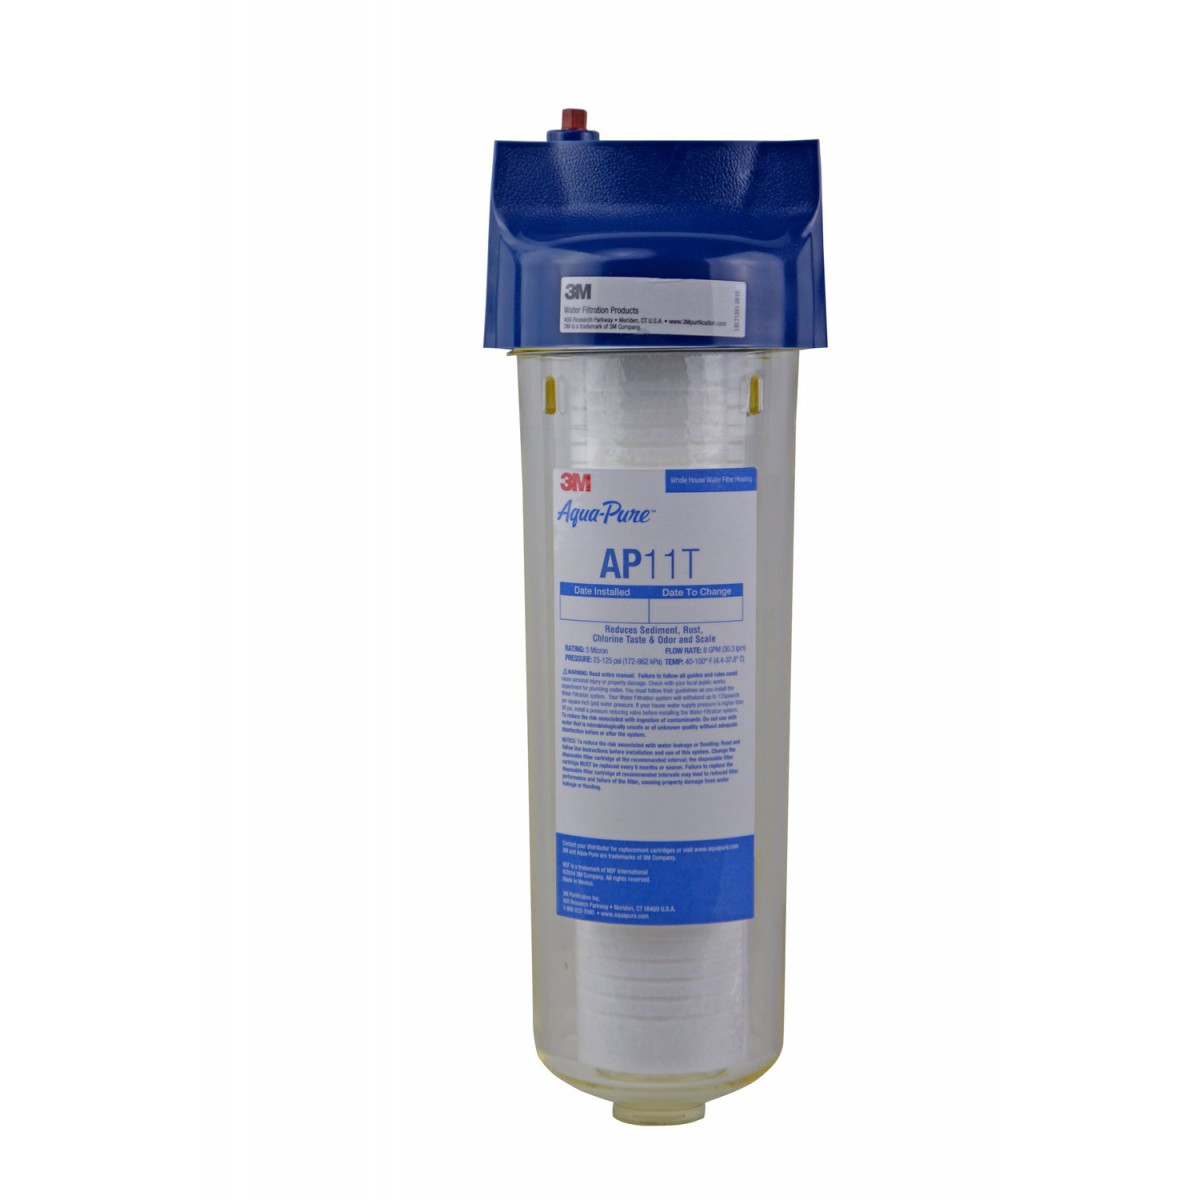 3m Aqua Pure Ap11t Whole House Water Filter